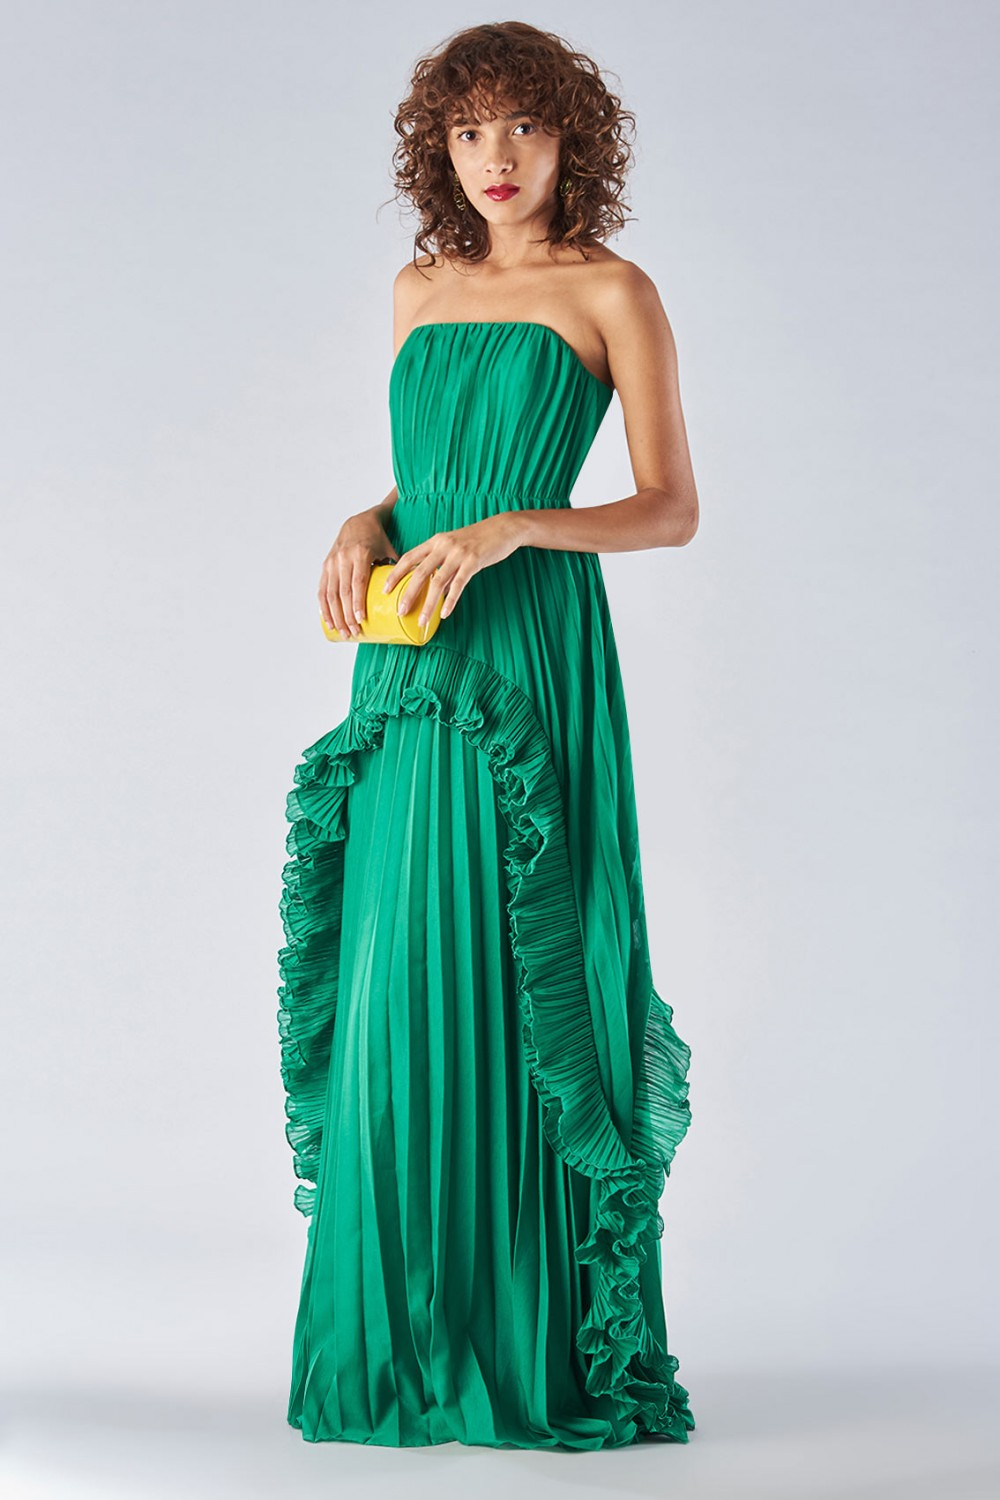 Bustier dress with front ruffles